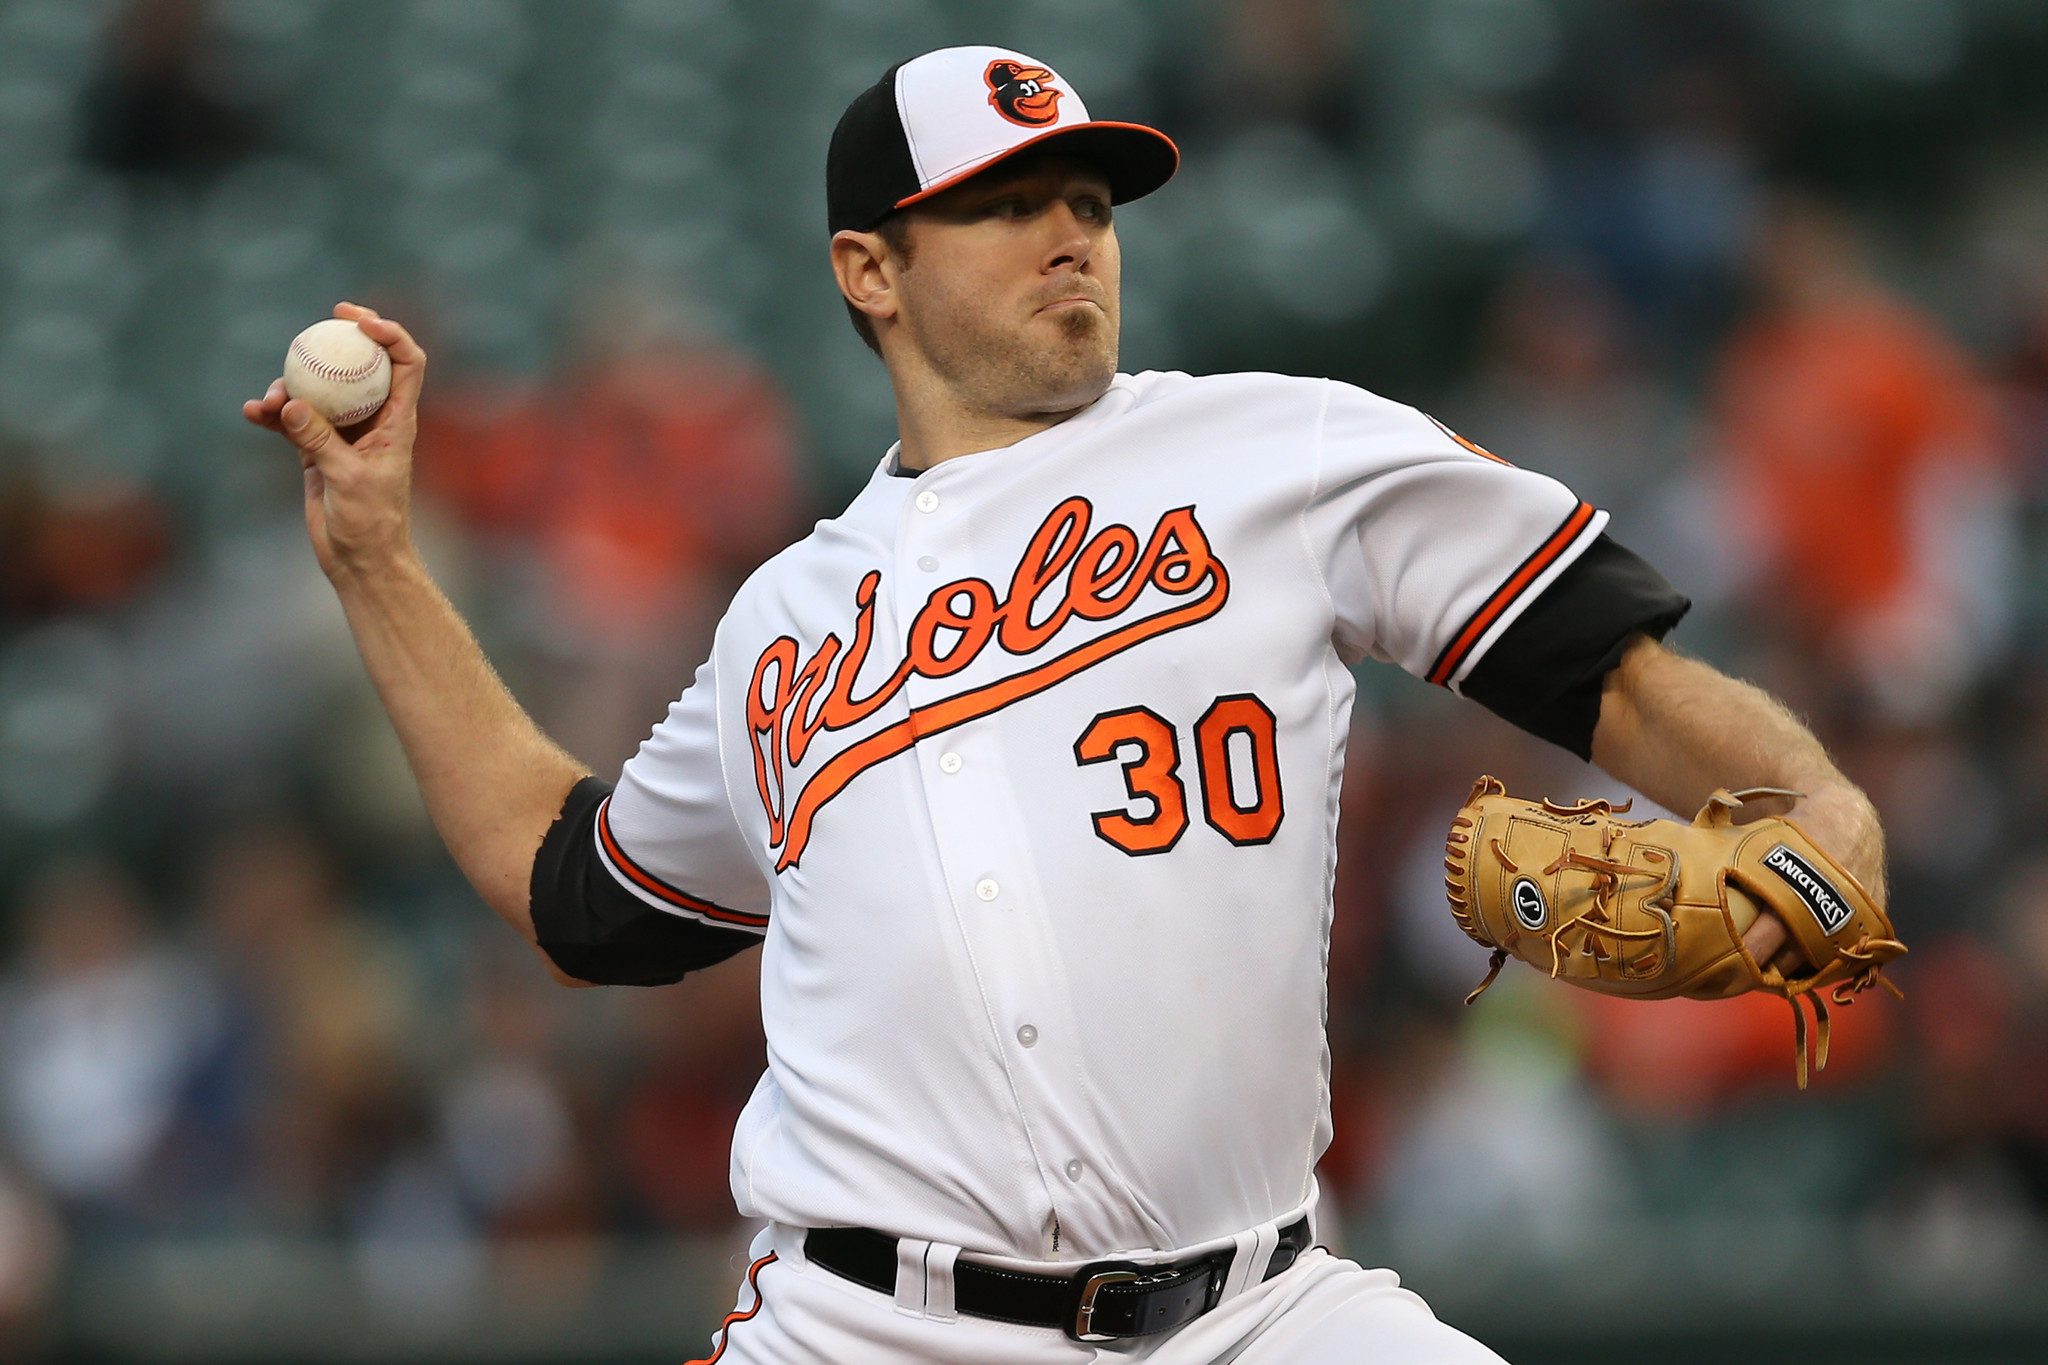 Bal-orioles-roundup-complete-coverage-of-tuesday-s-4-1-win-over-the-yankees-20160504